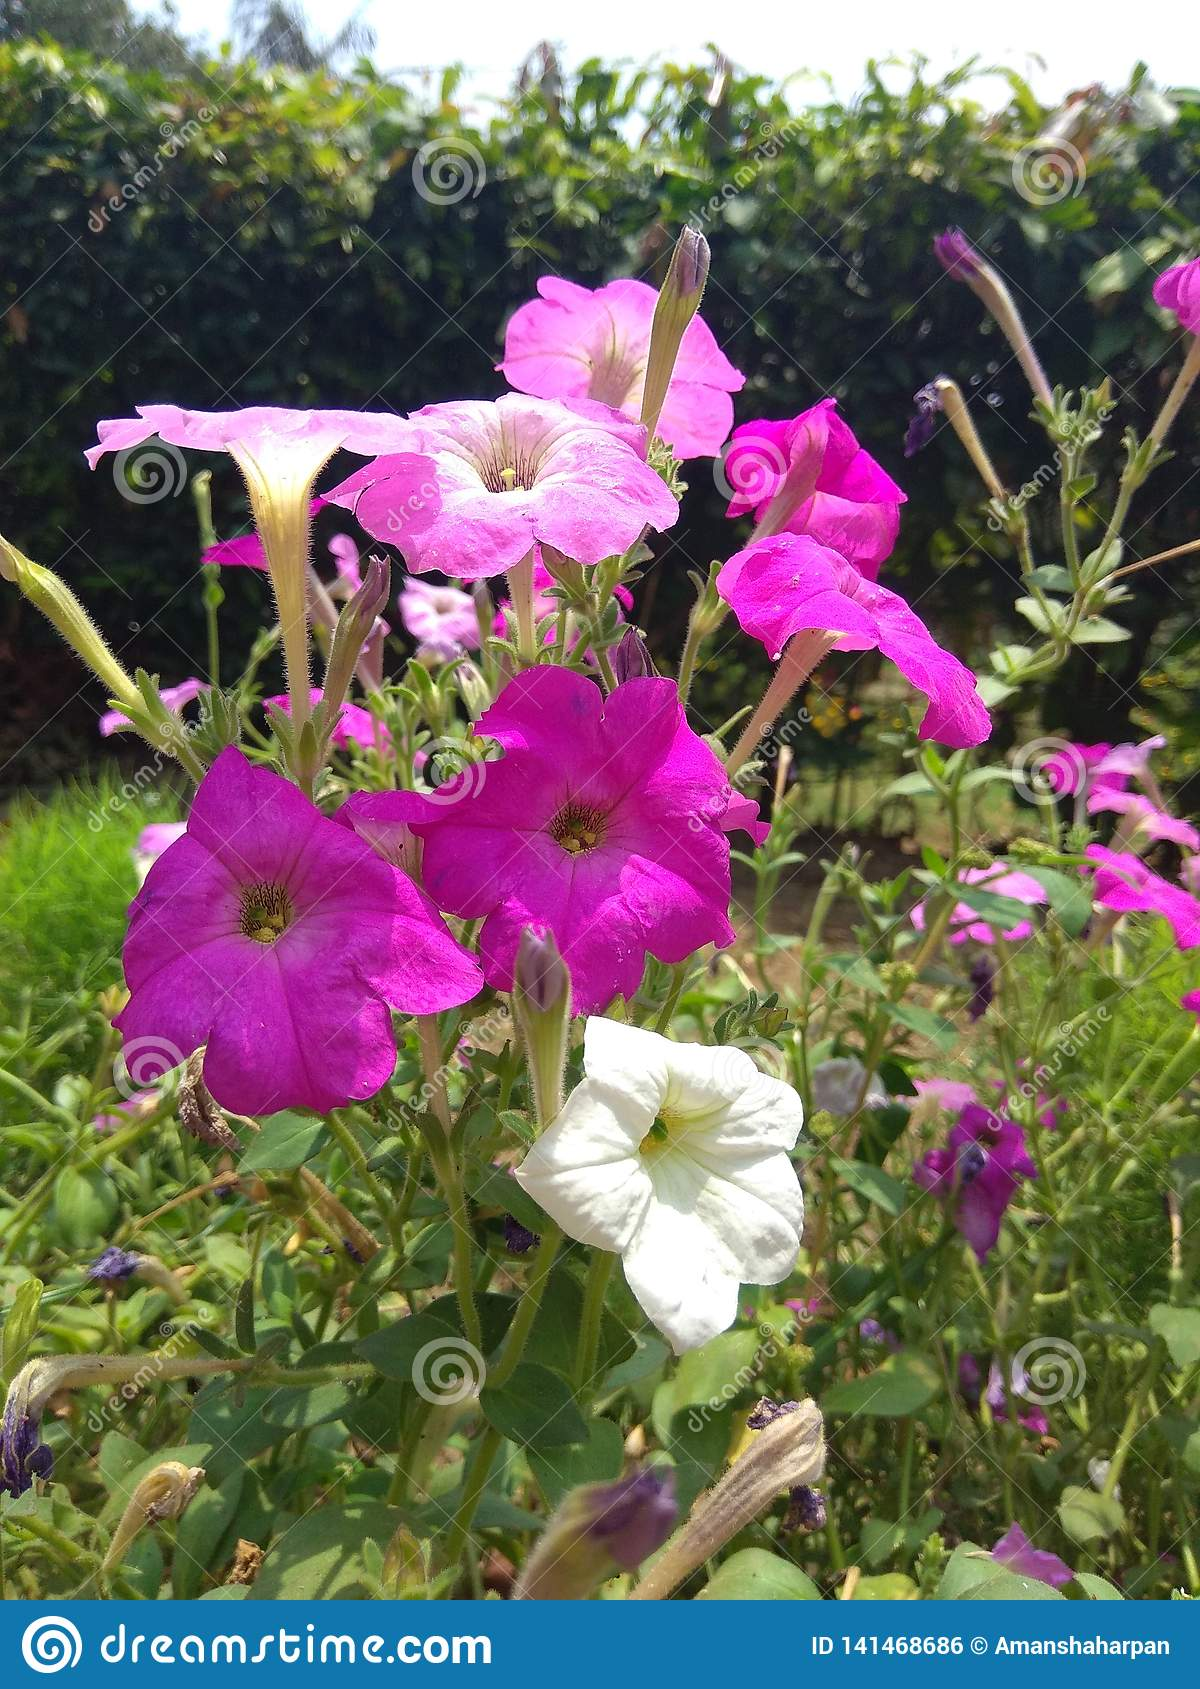 Nature, Flowers, Wallpaper Flowers Stock Photo - Image of